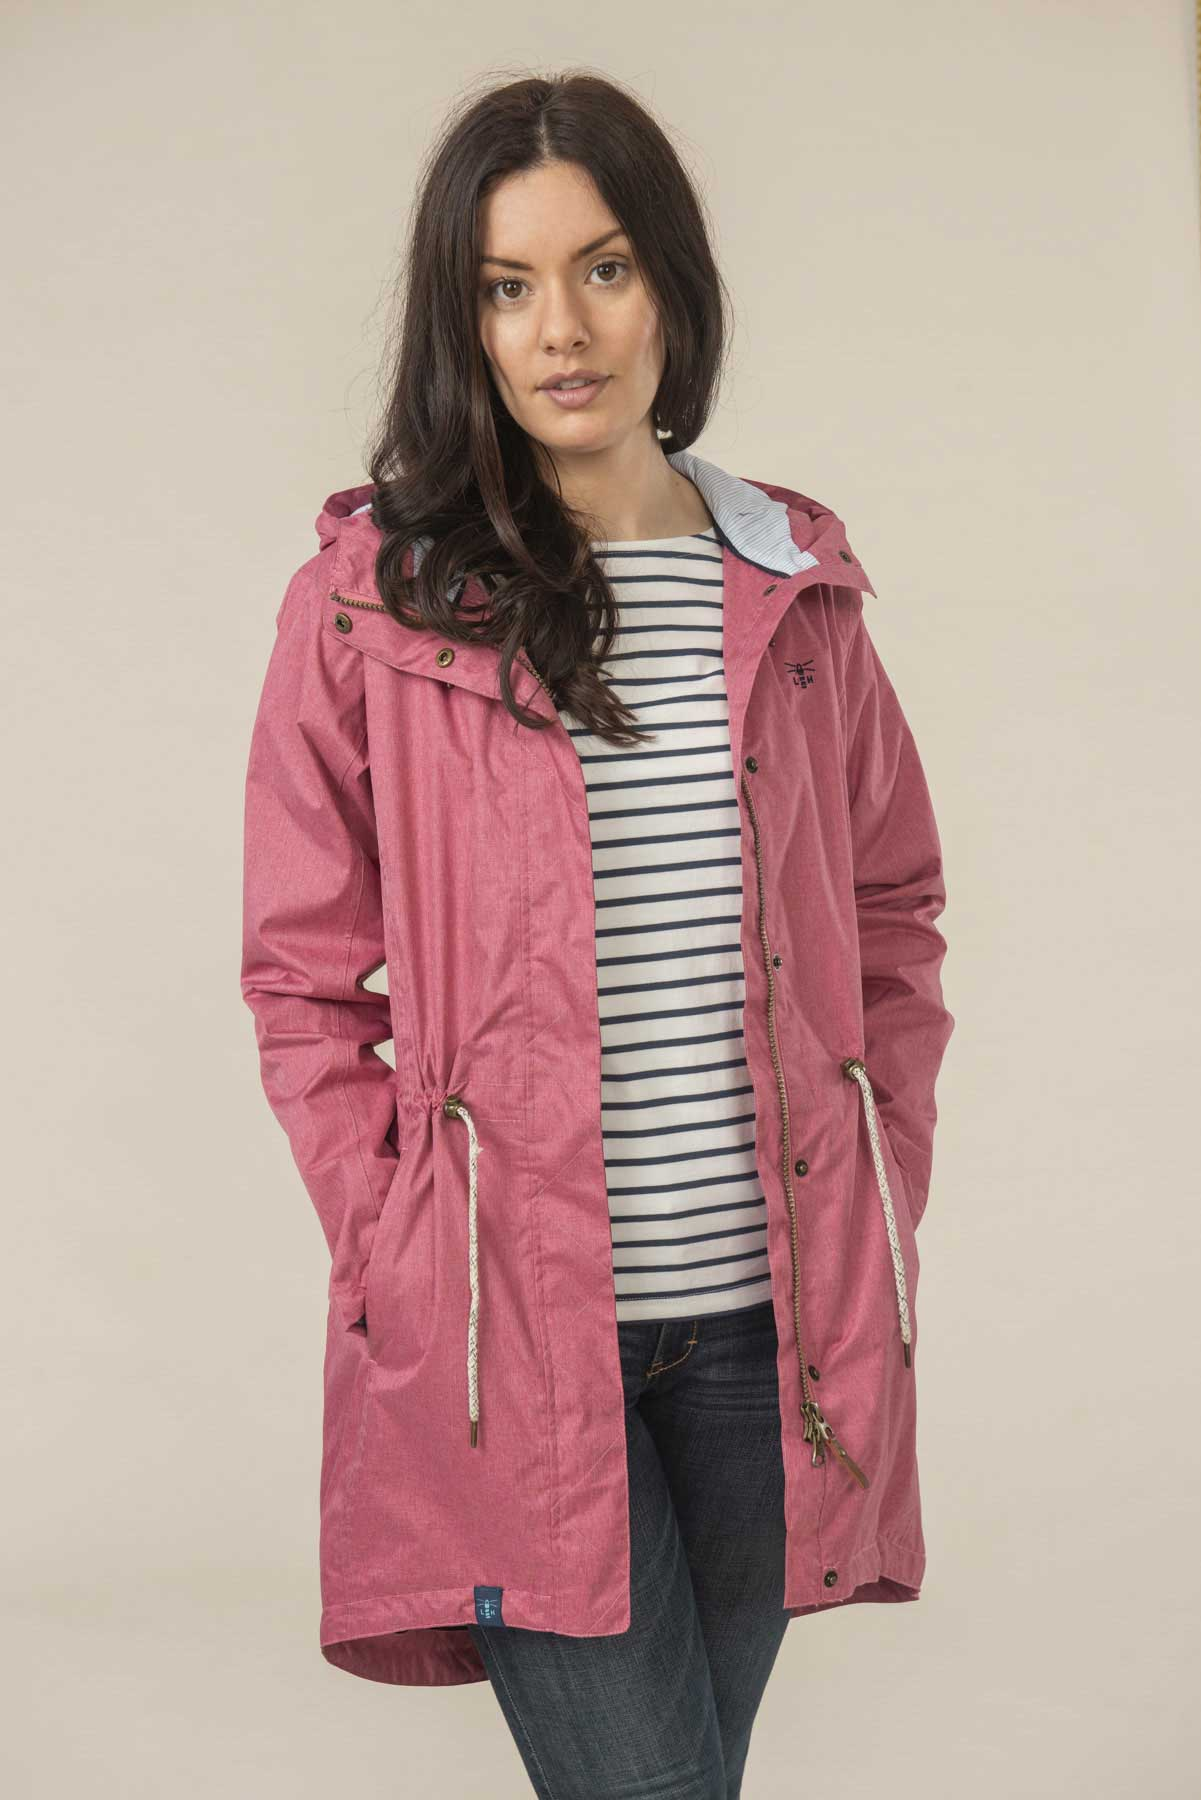 Women's Coats - Emily - Red Raincoat